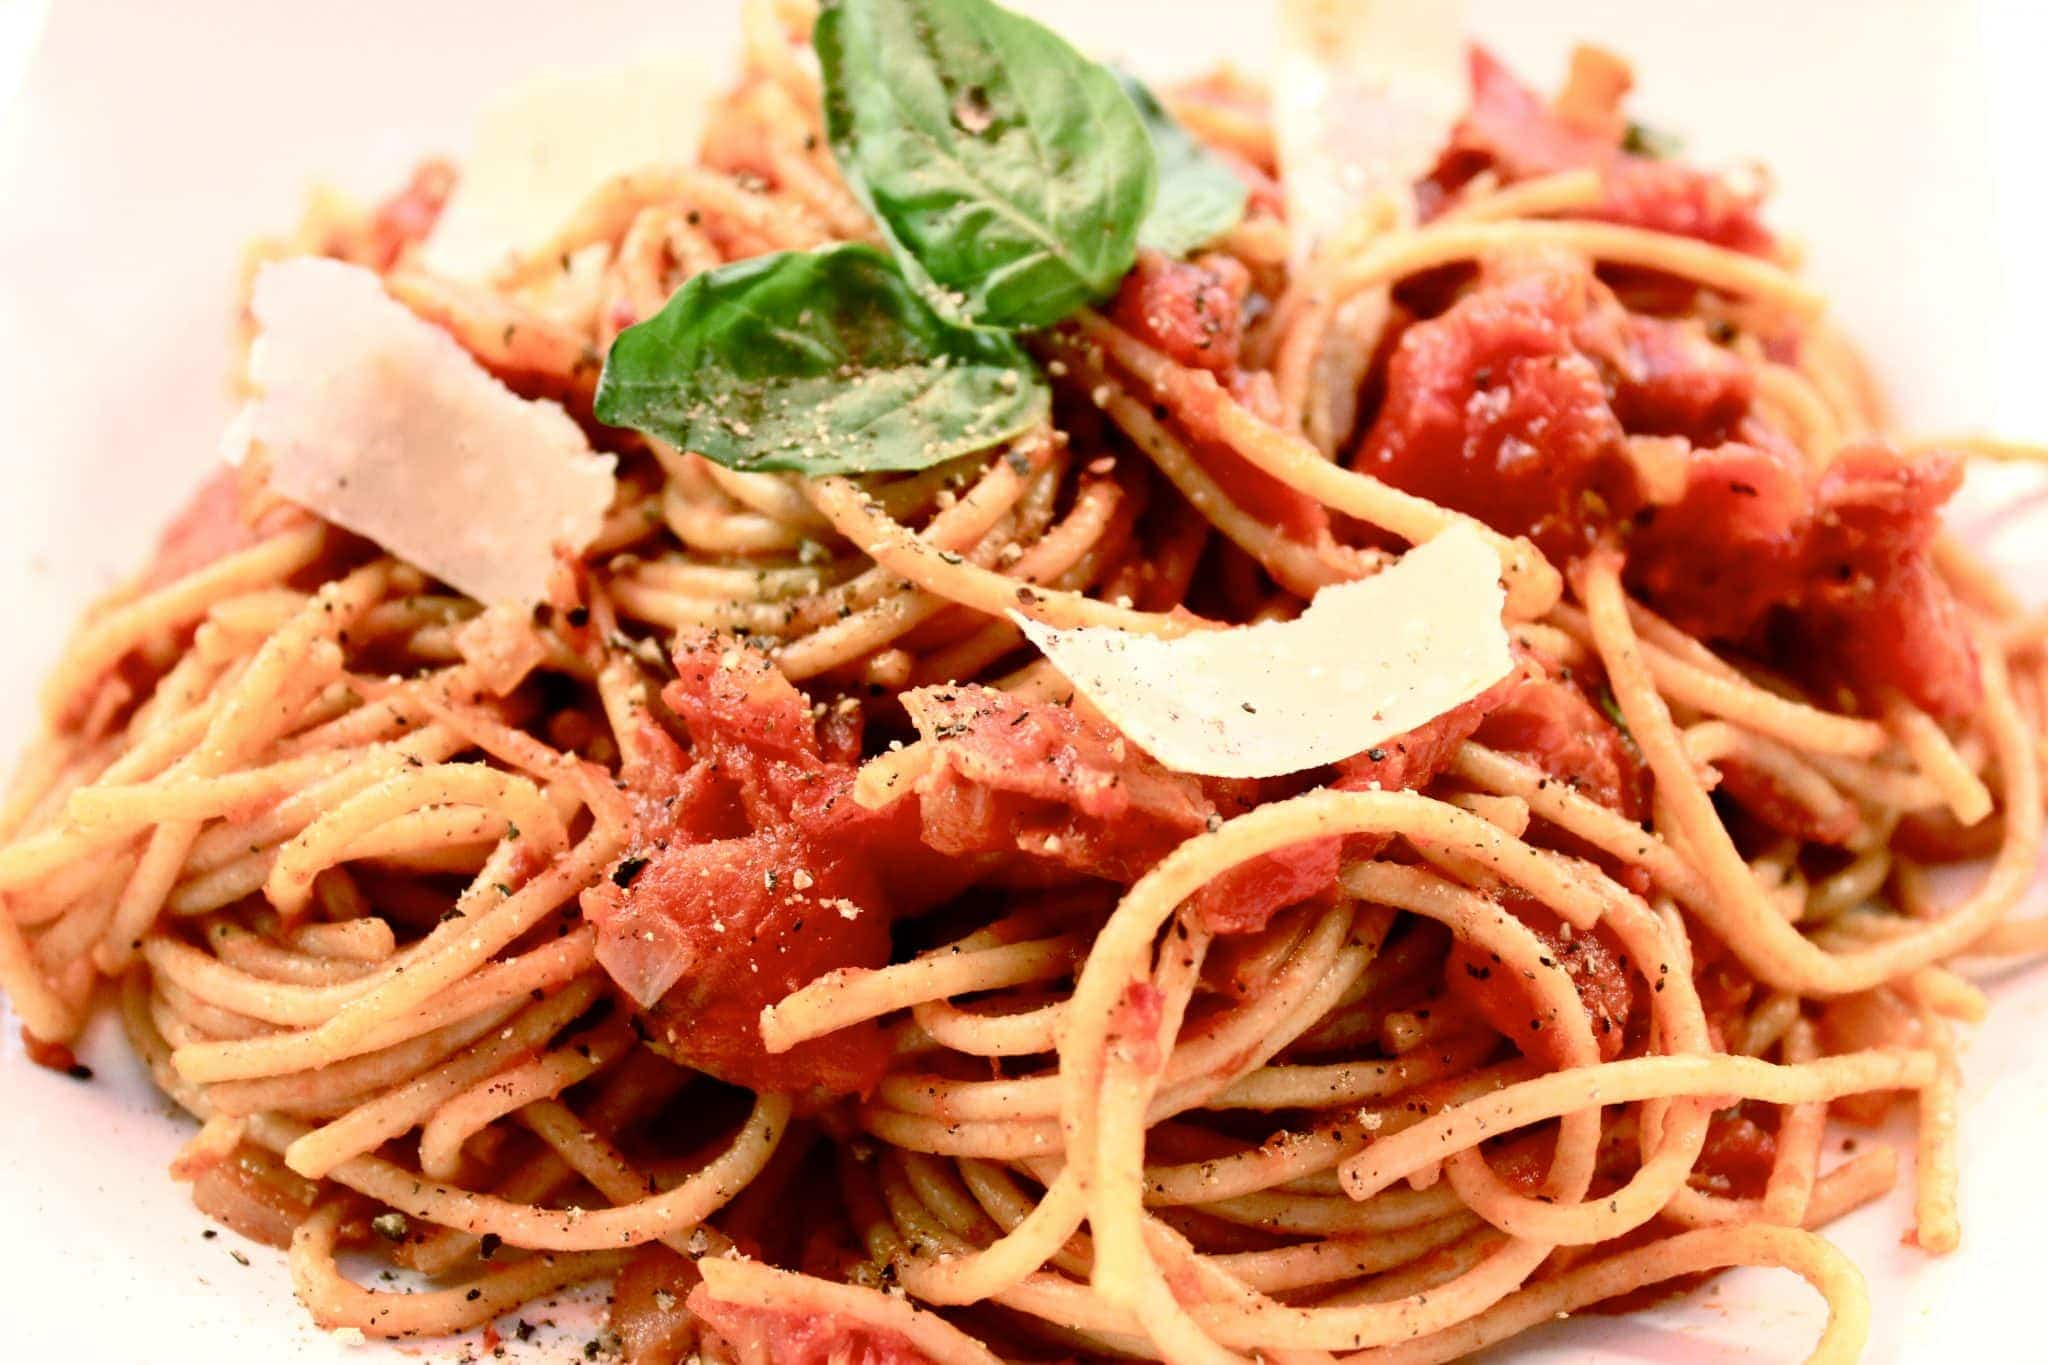 It's easy to see why this spaghetti dish is among the Italian main dishes.